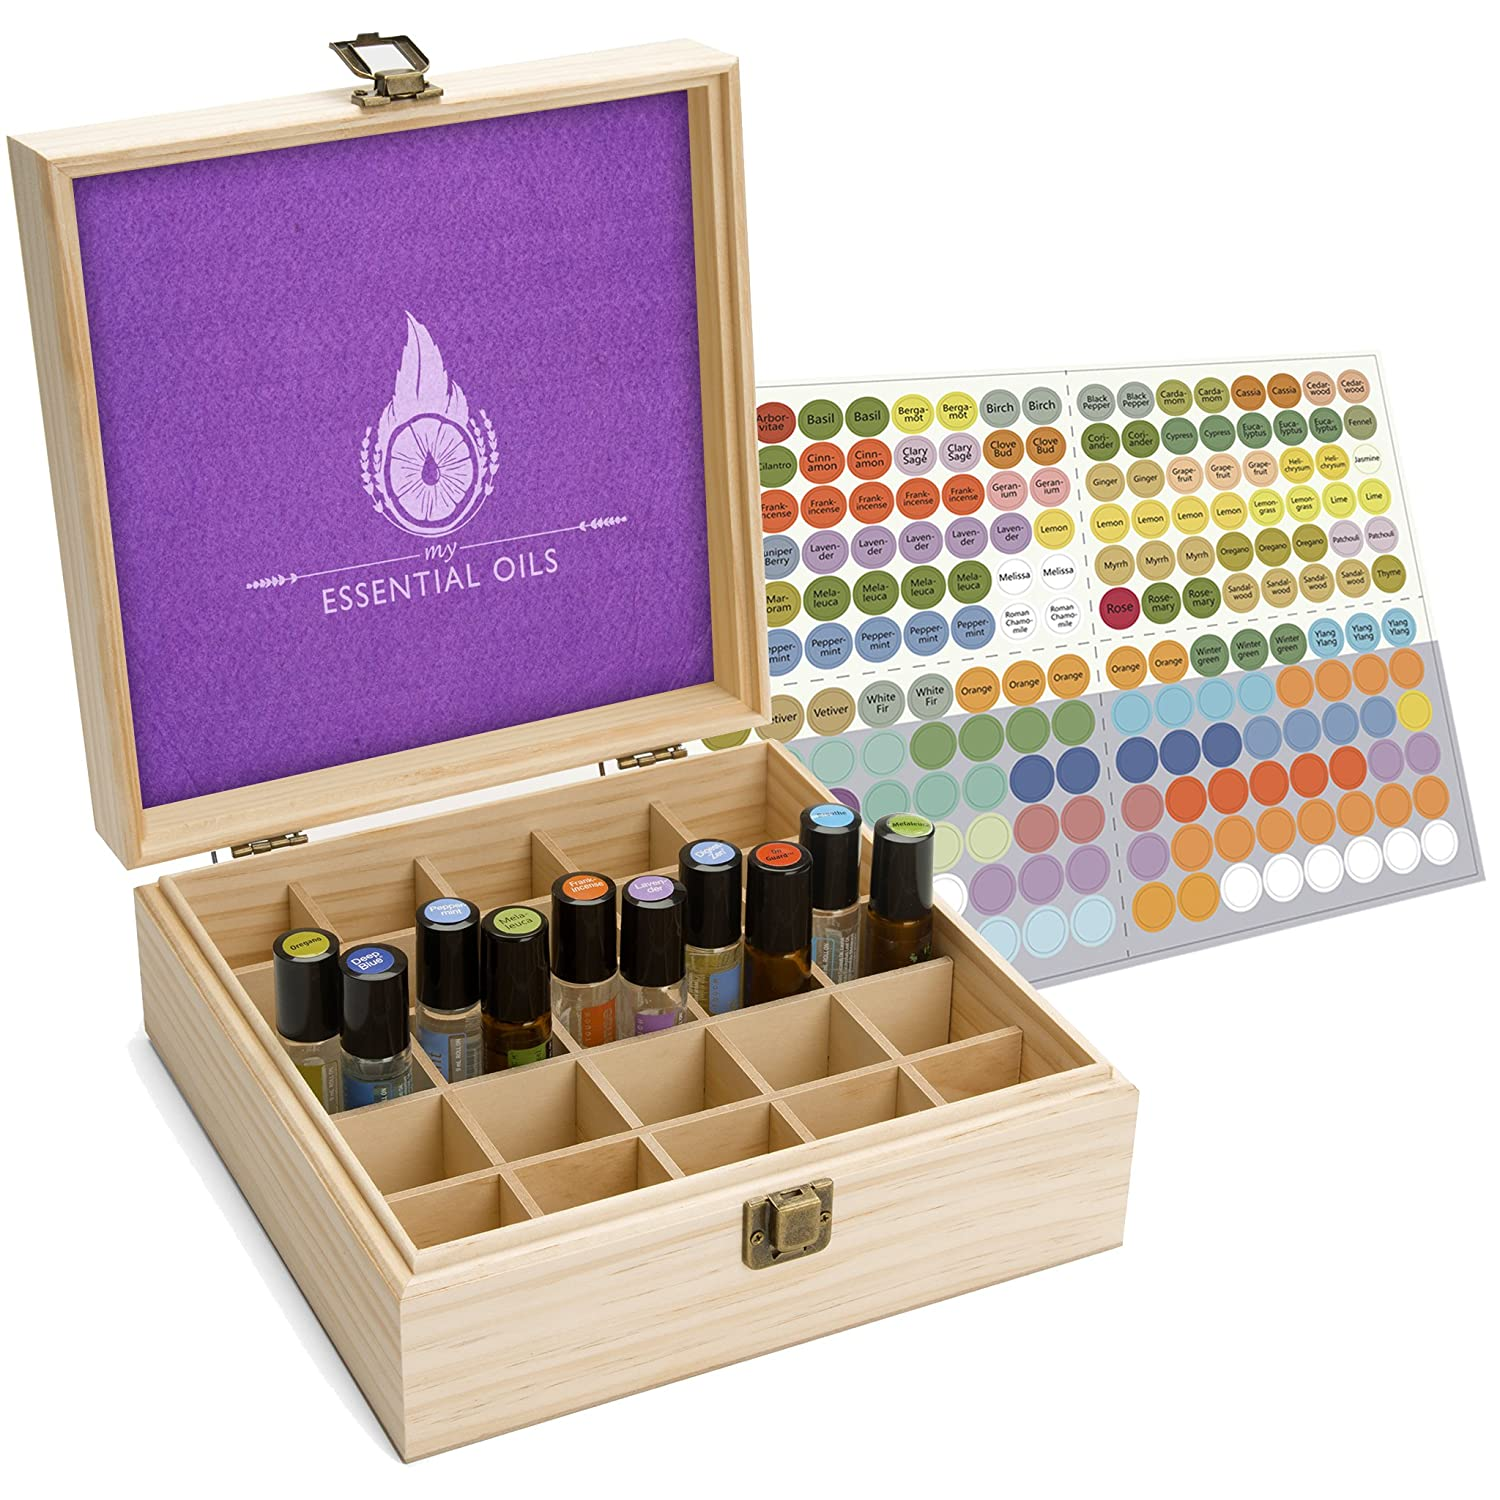 Essential Oil Box - 25 Slots. Holds Up To 50 Roll Ons